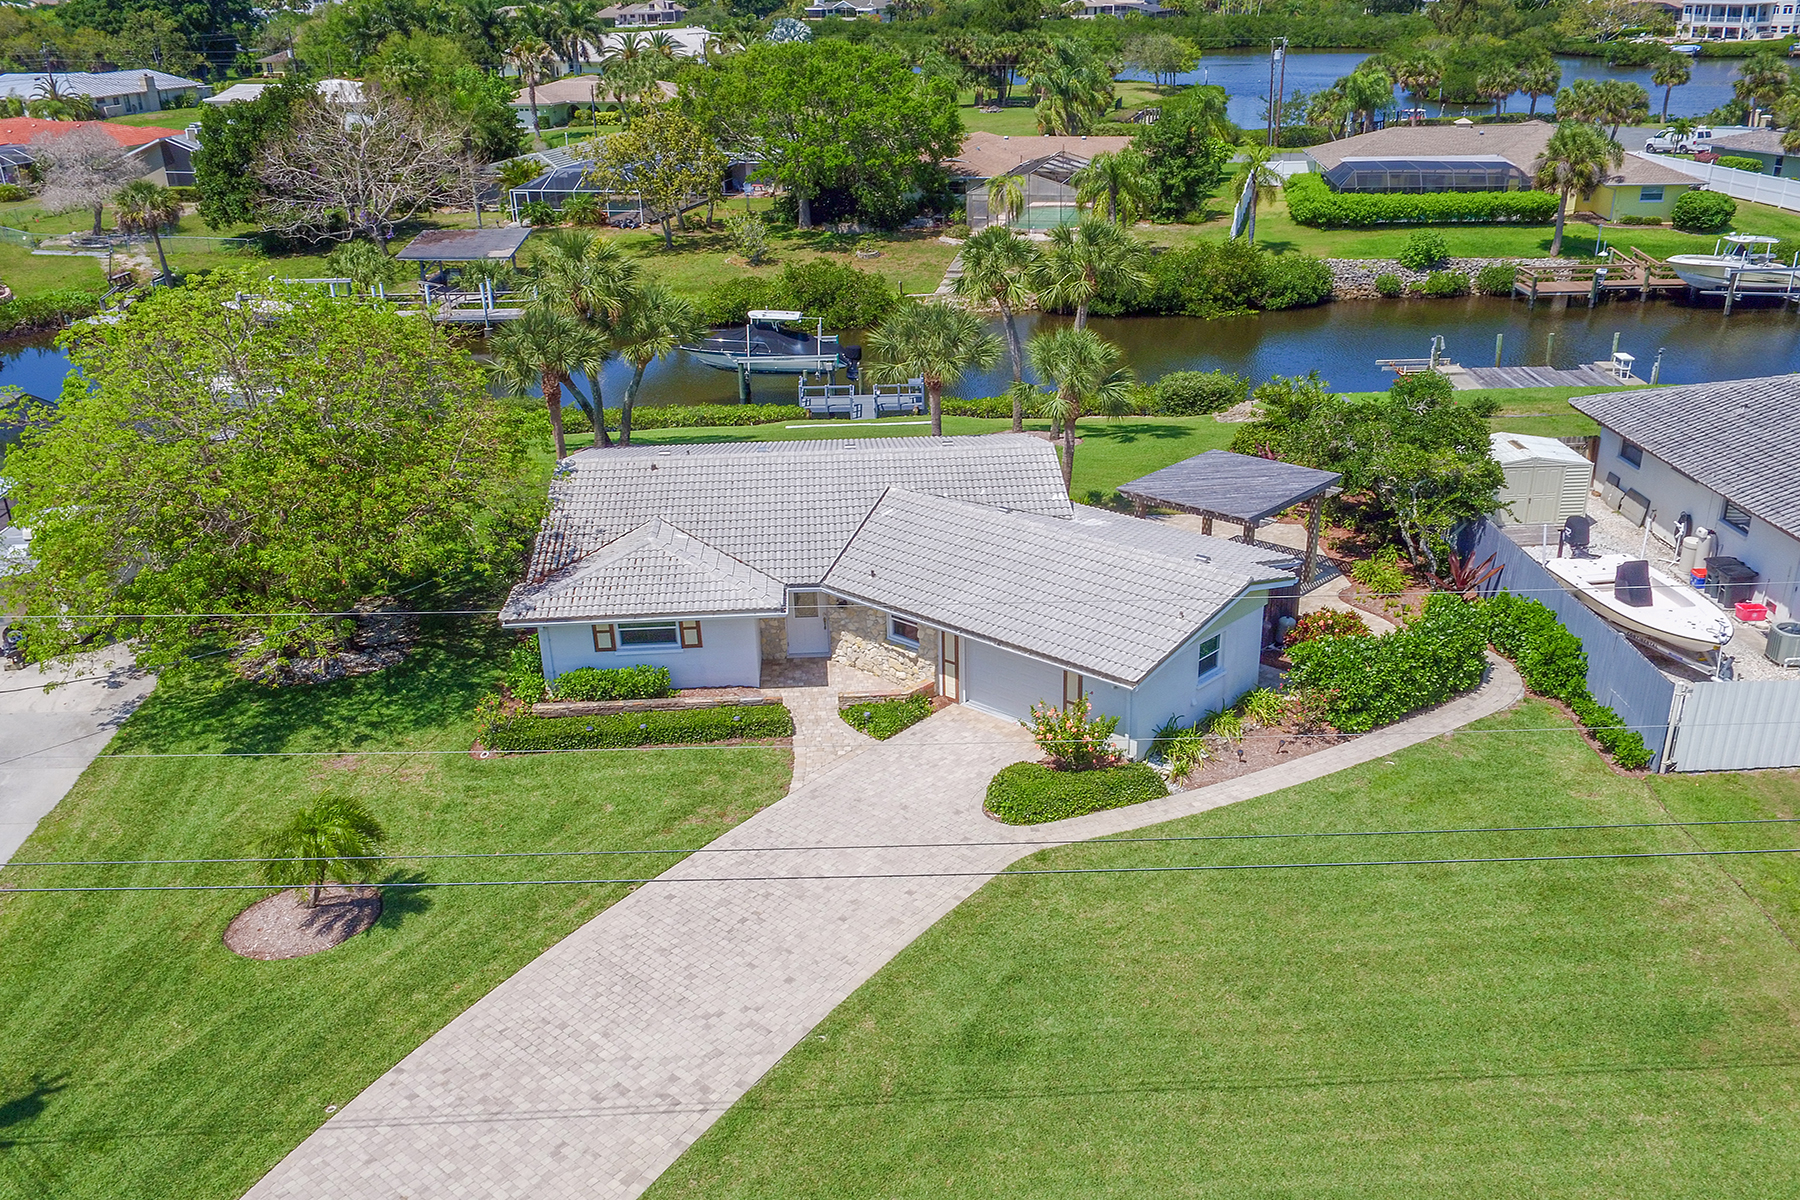 Single Family Home for Sale at SORRENTO SHORES 372 Renoir Dr Osprey, Florida, 34229 United States